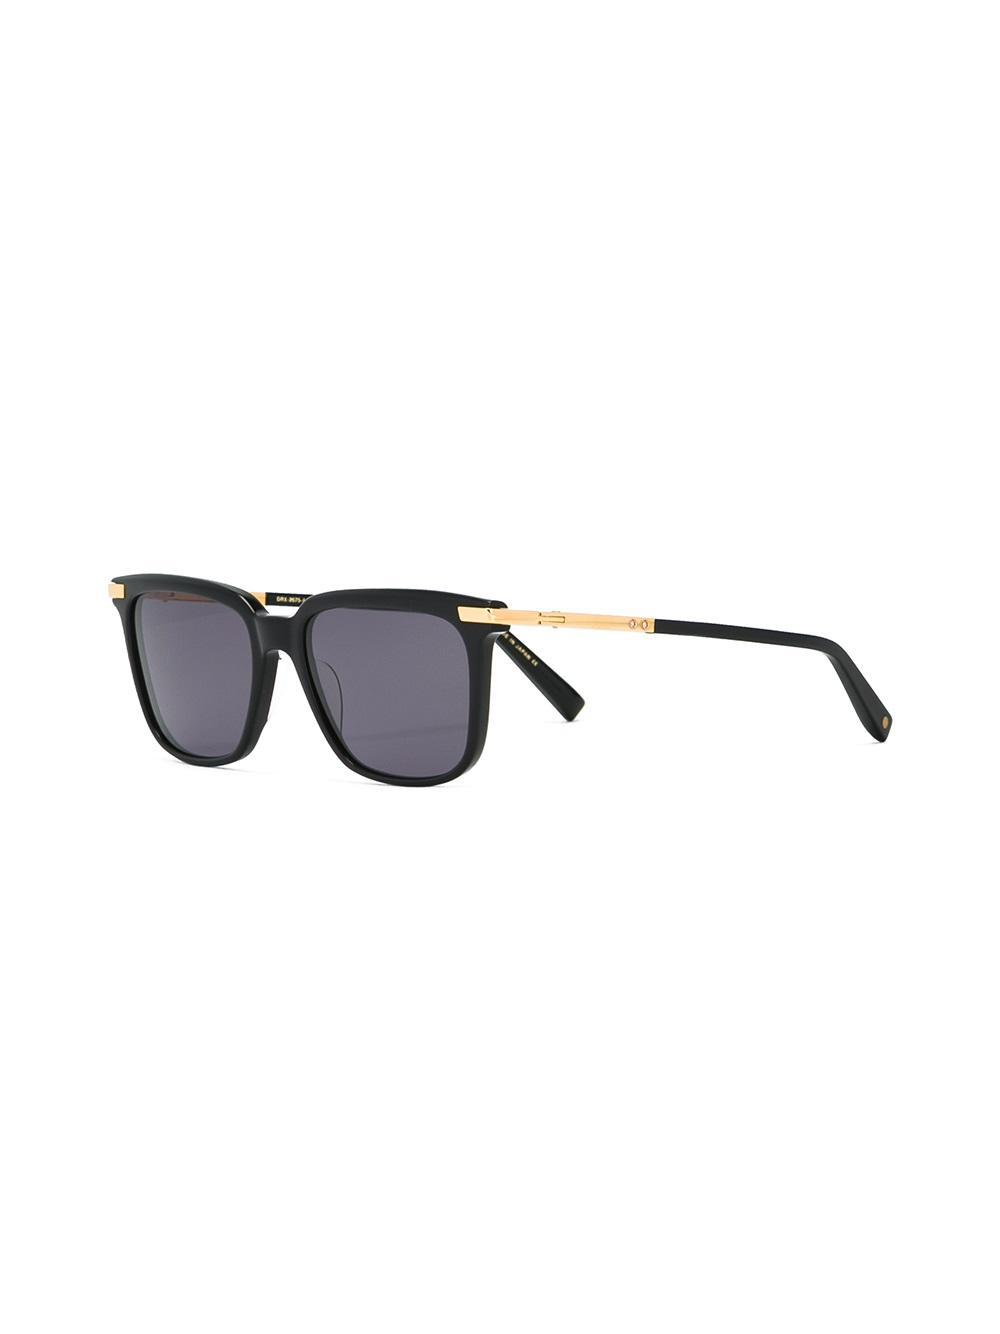 Dita Eyewear 'cooper' Sunglasses in Black for Men